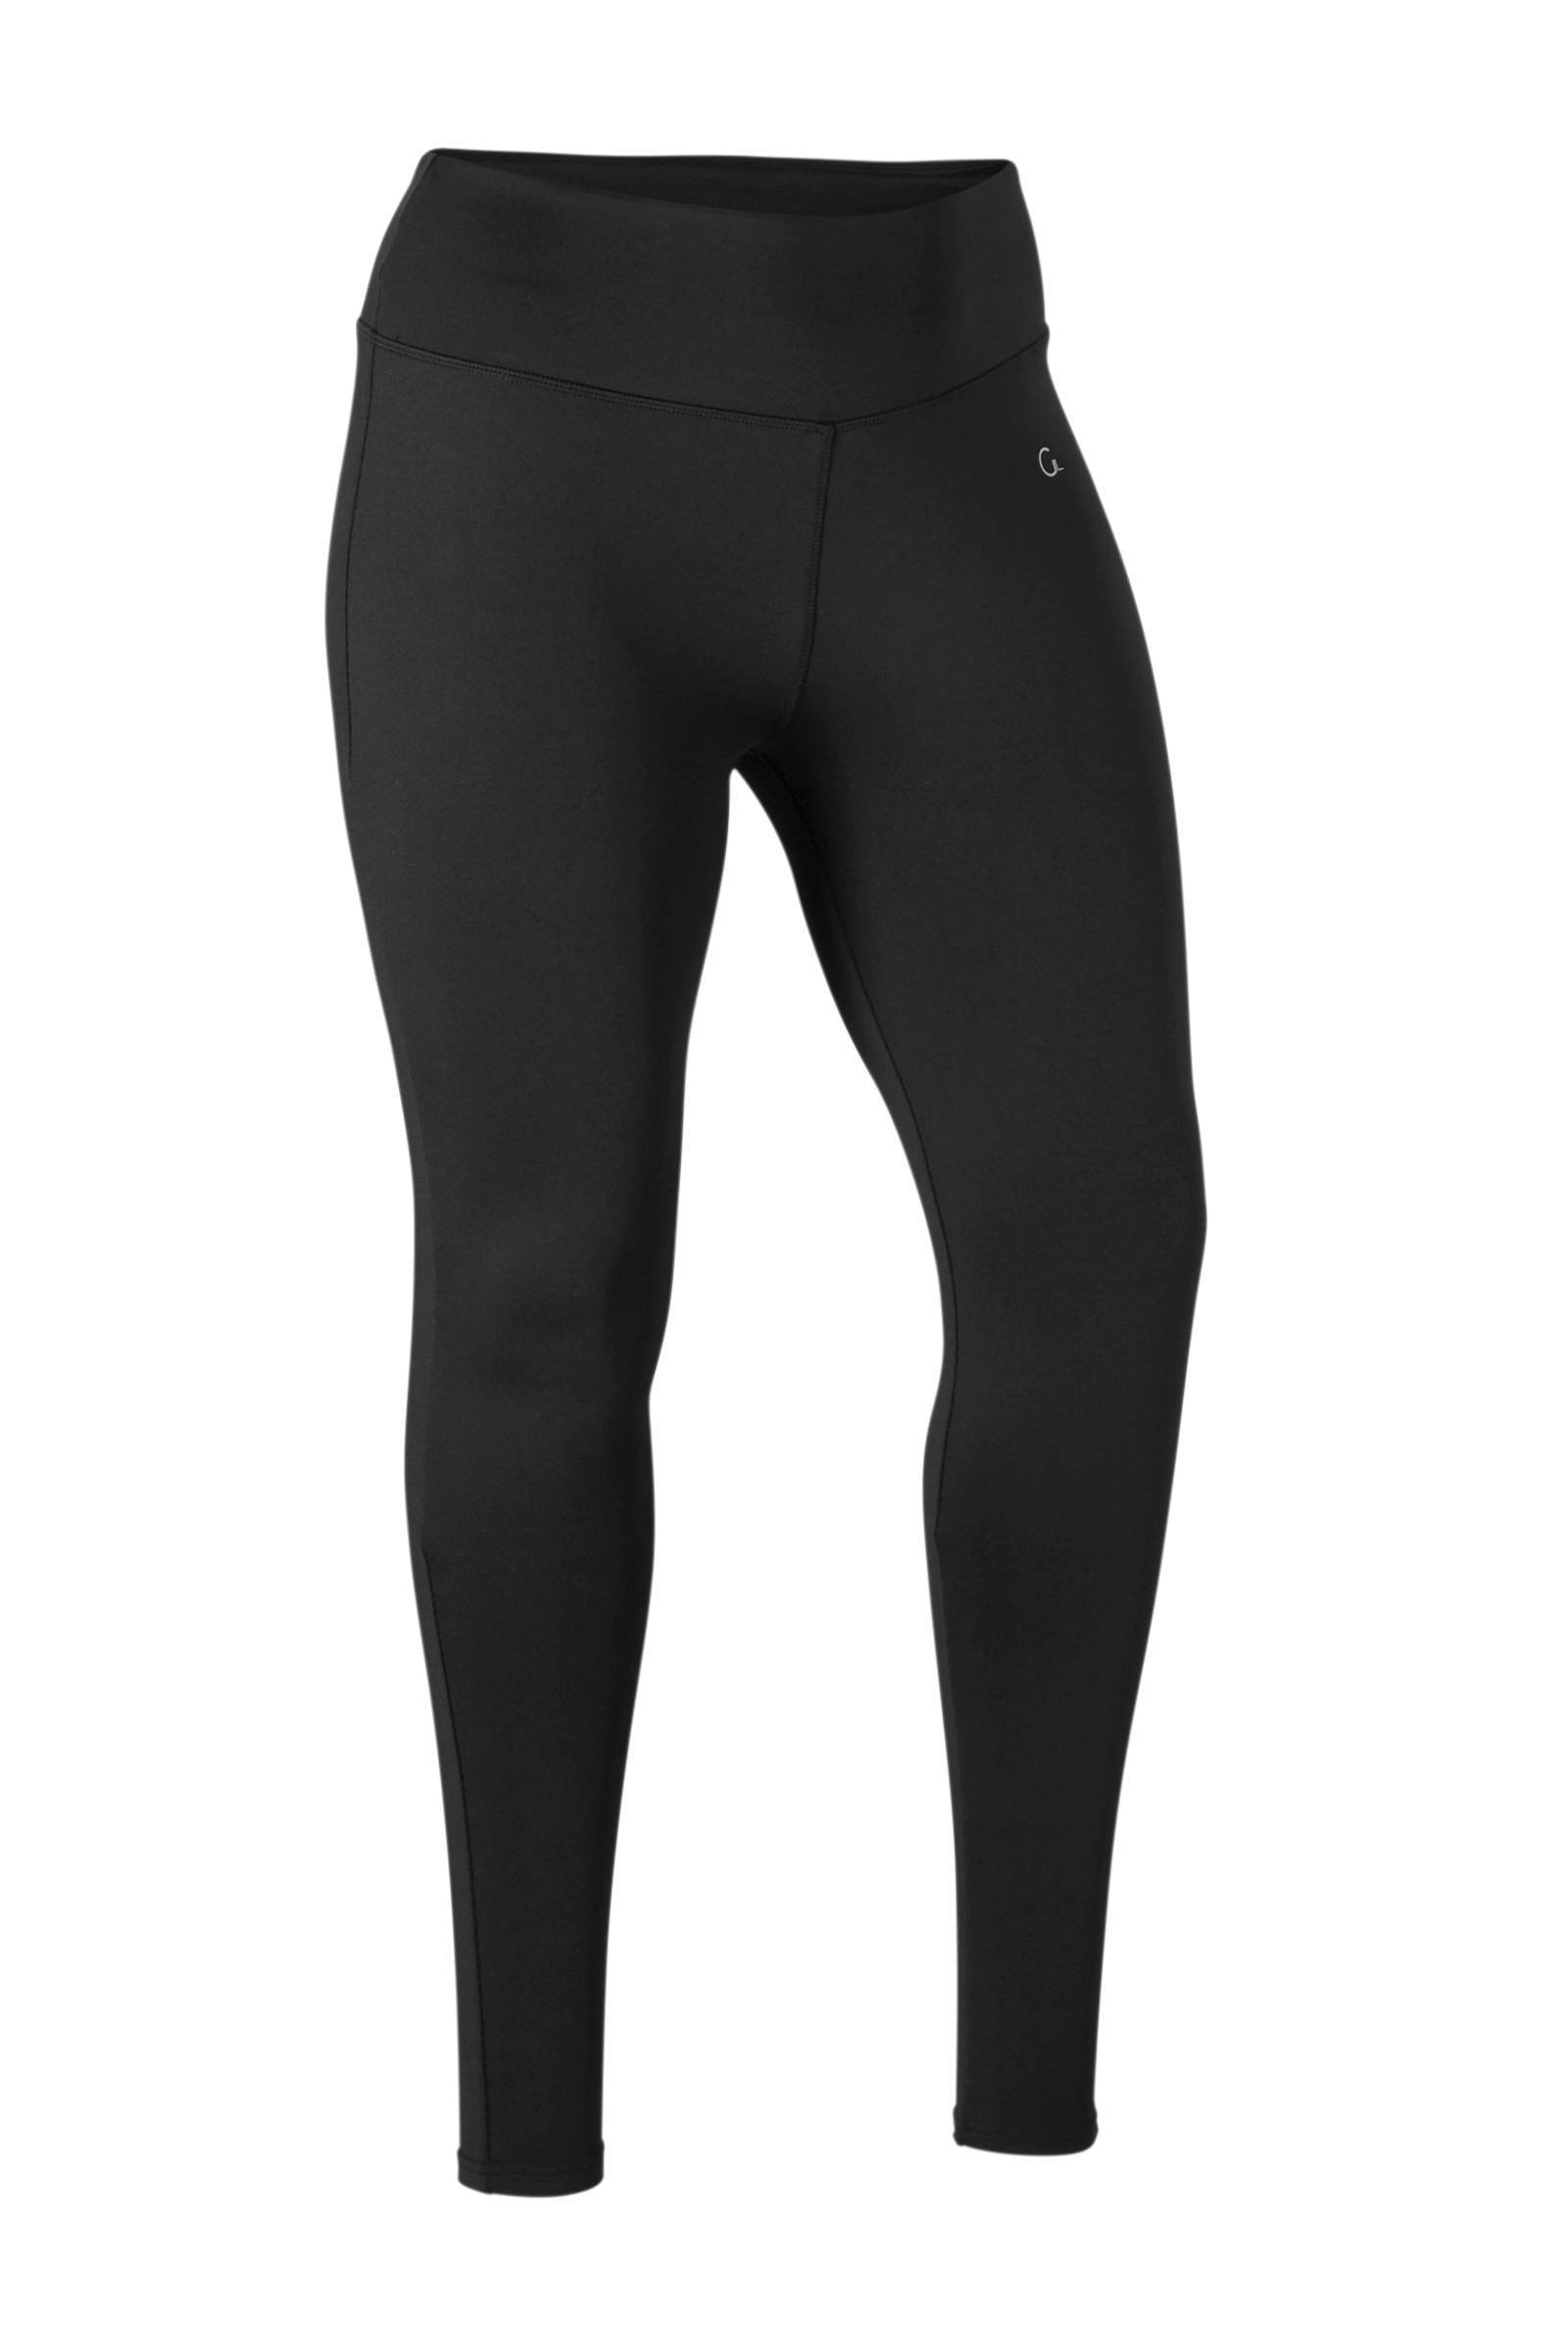 whkmp's great looks sport broek (dames)